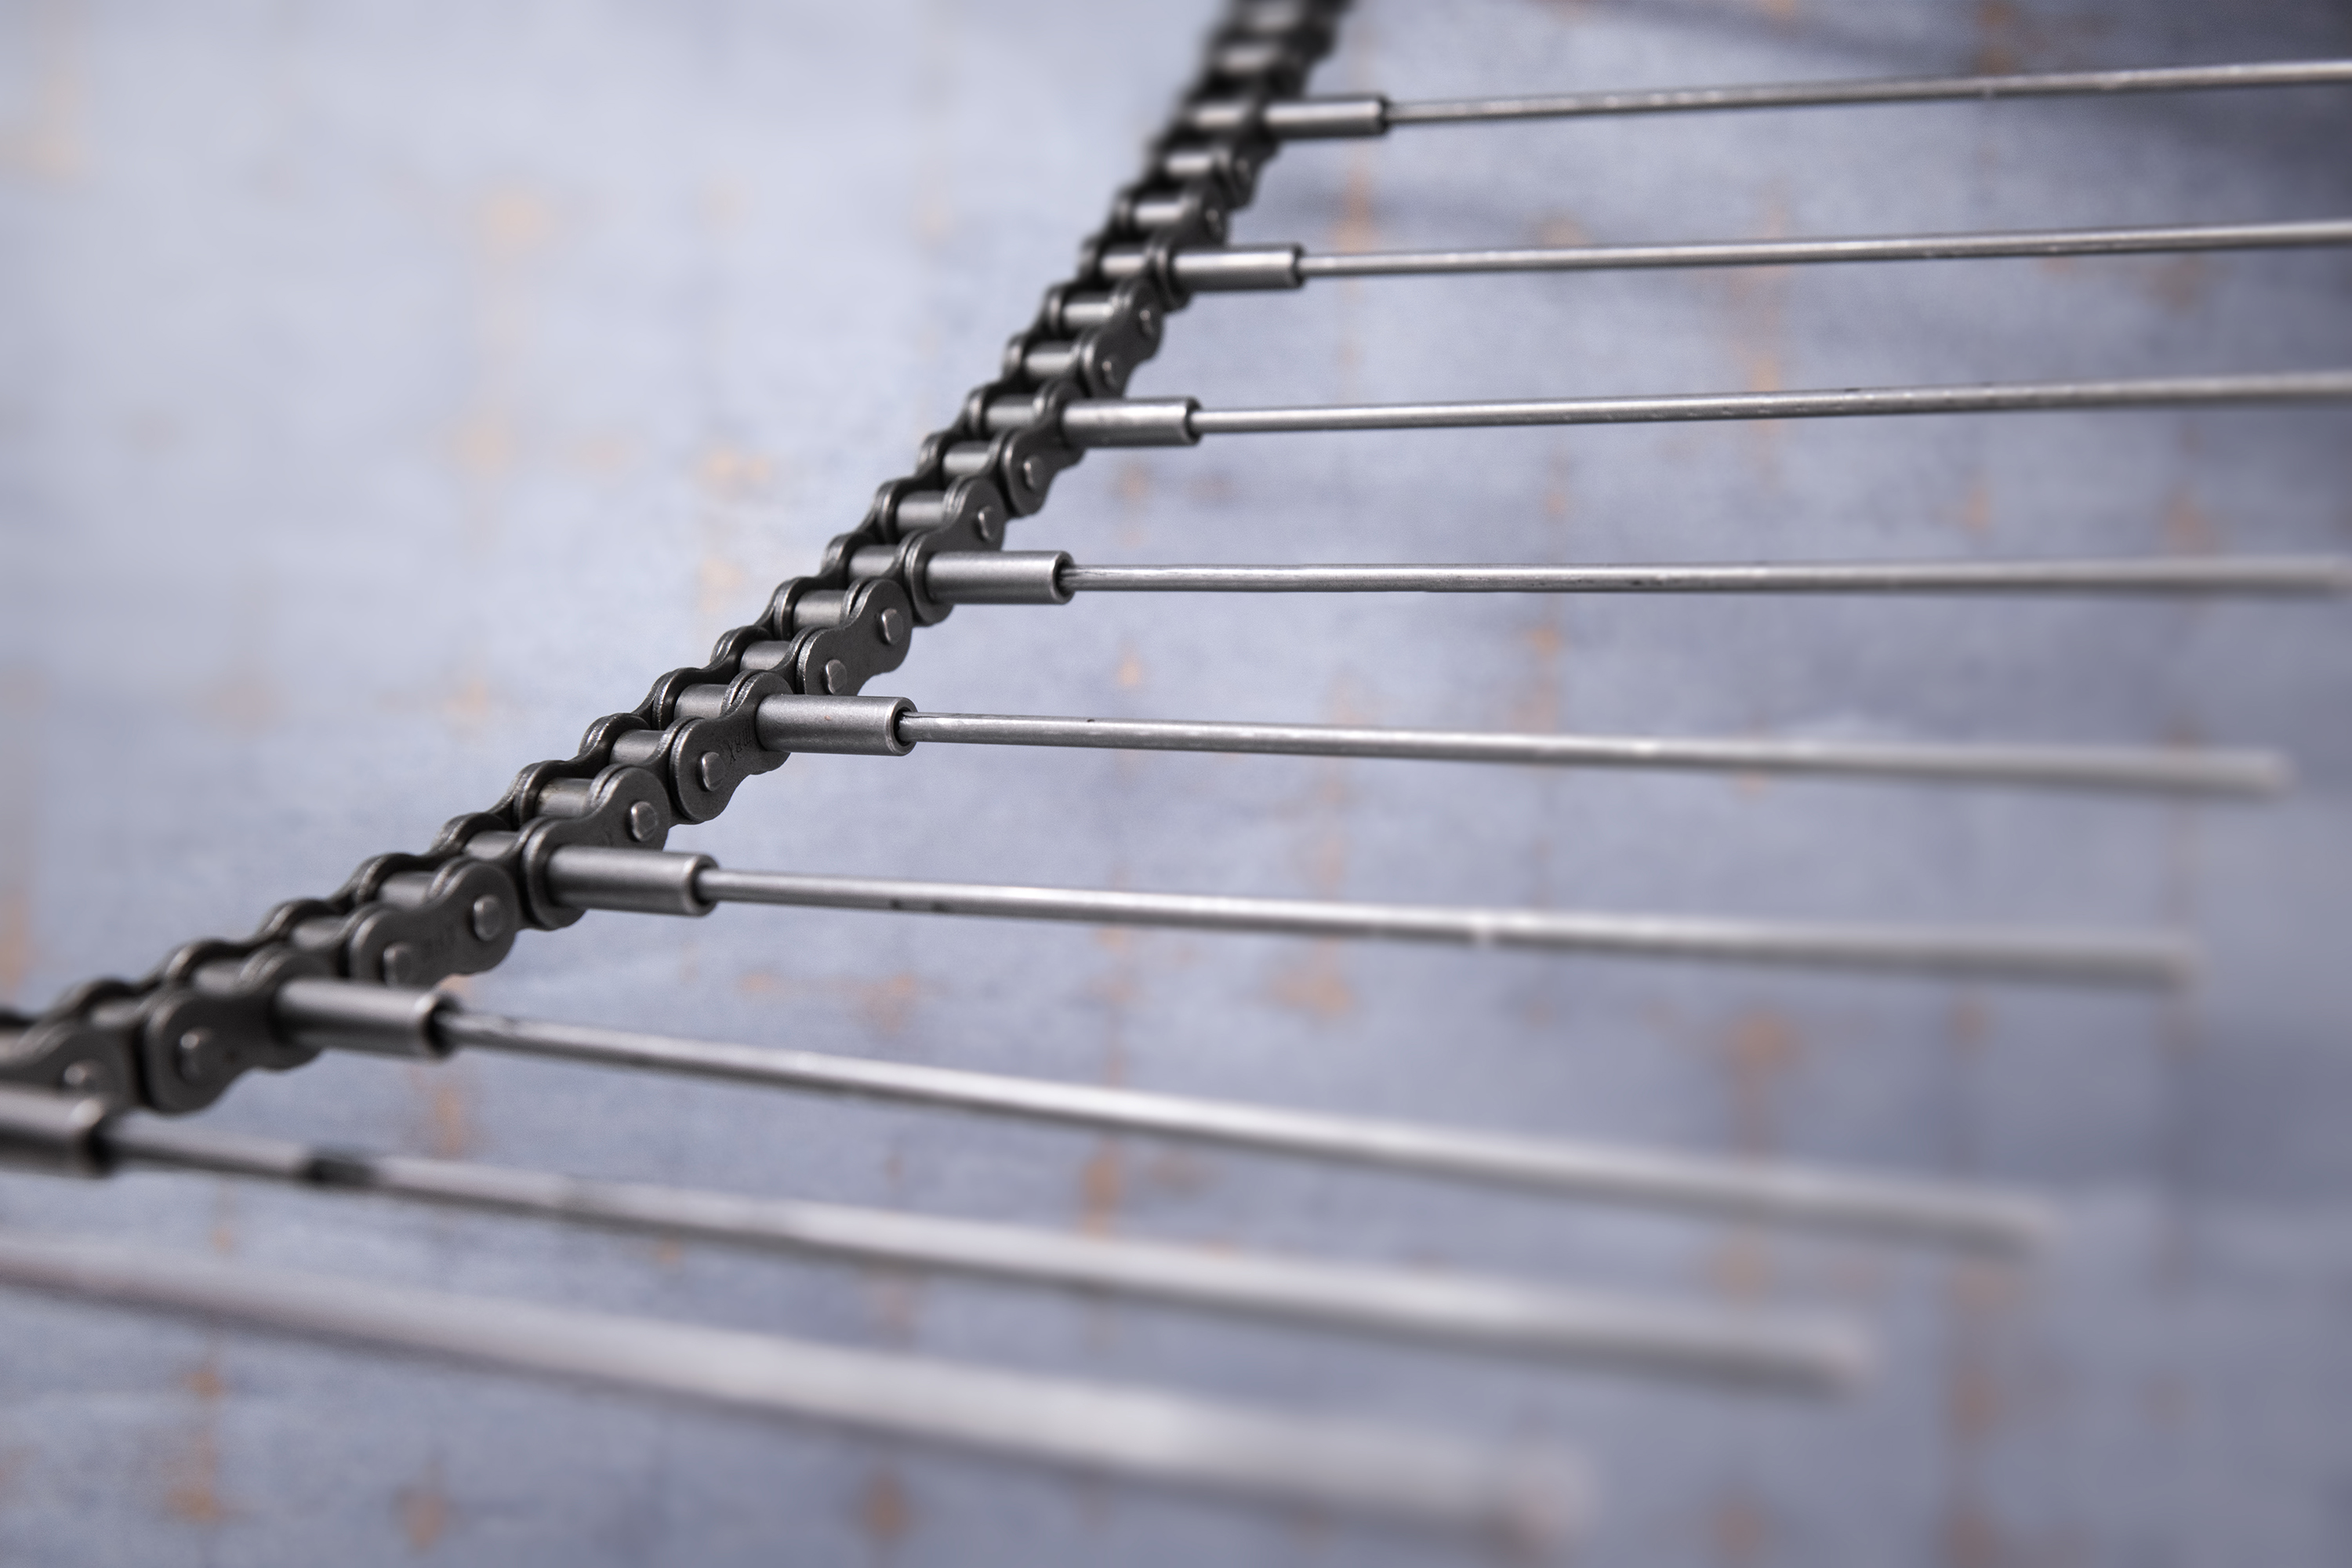 pin-oven-chains-0720